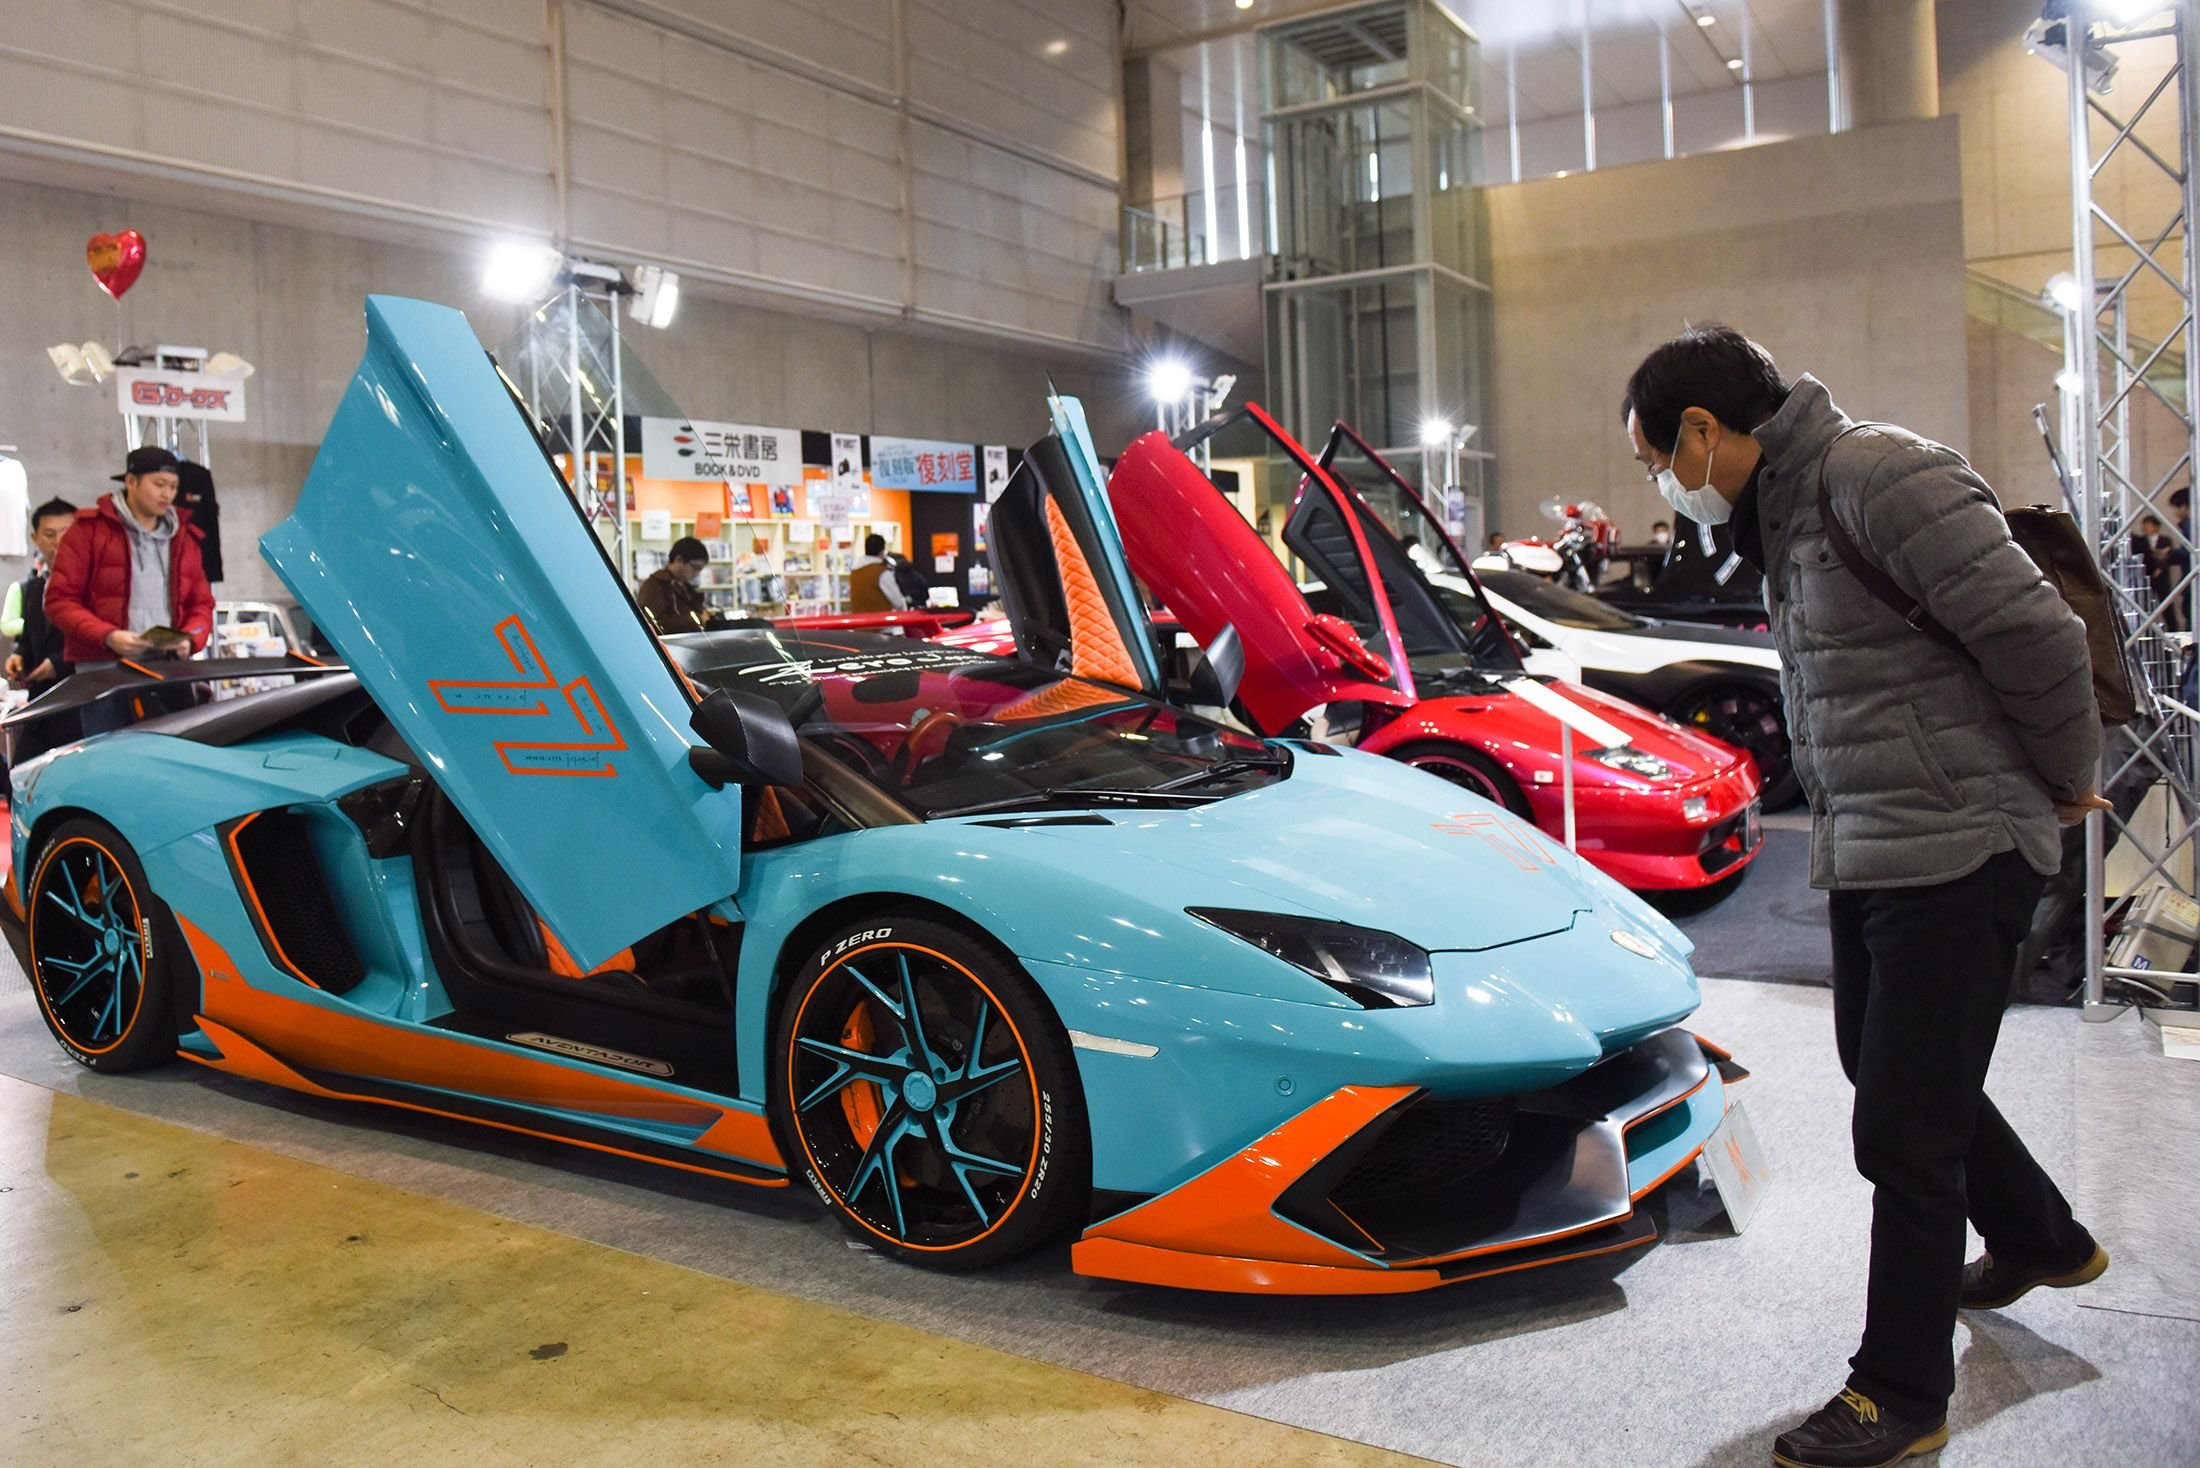 13 Crazy Photos From Japan's Stunning Car Show Which Prove It's Every Car Lover's Wet Dream